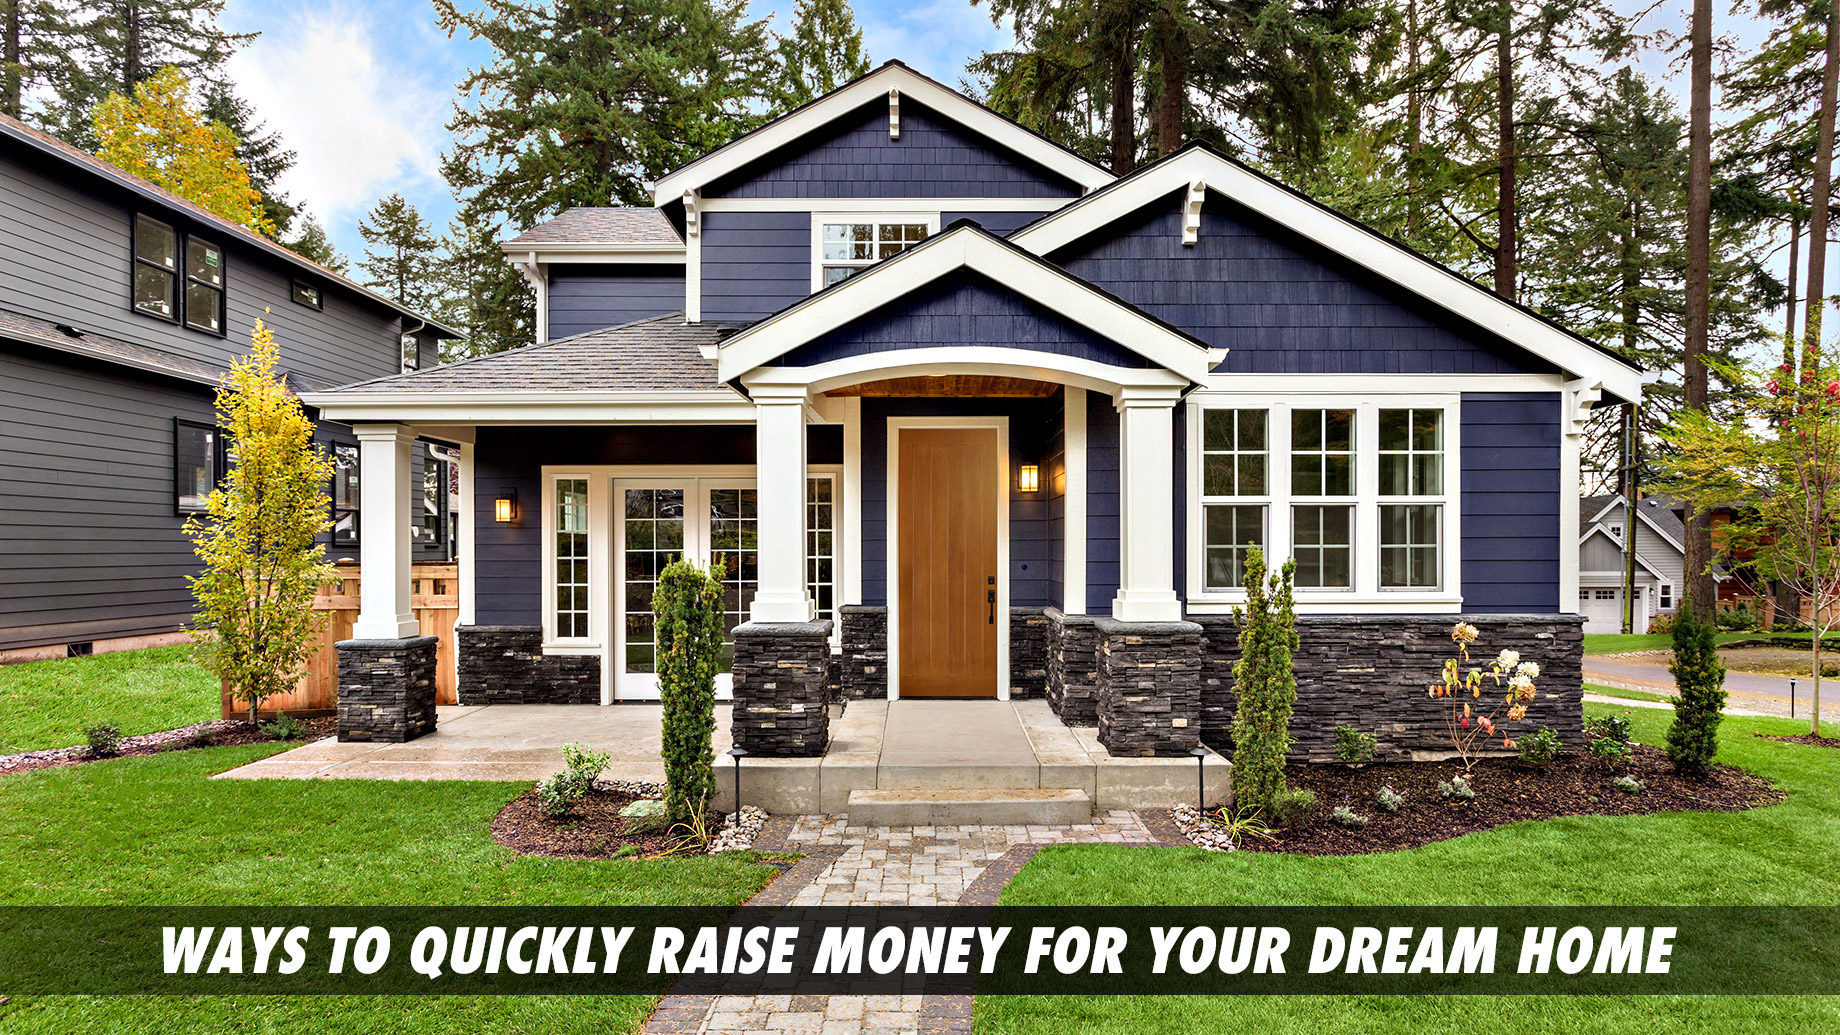 Ways To Quickly Raise Money For Your Dream Home